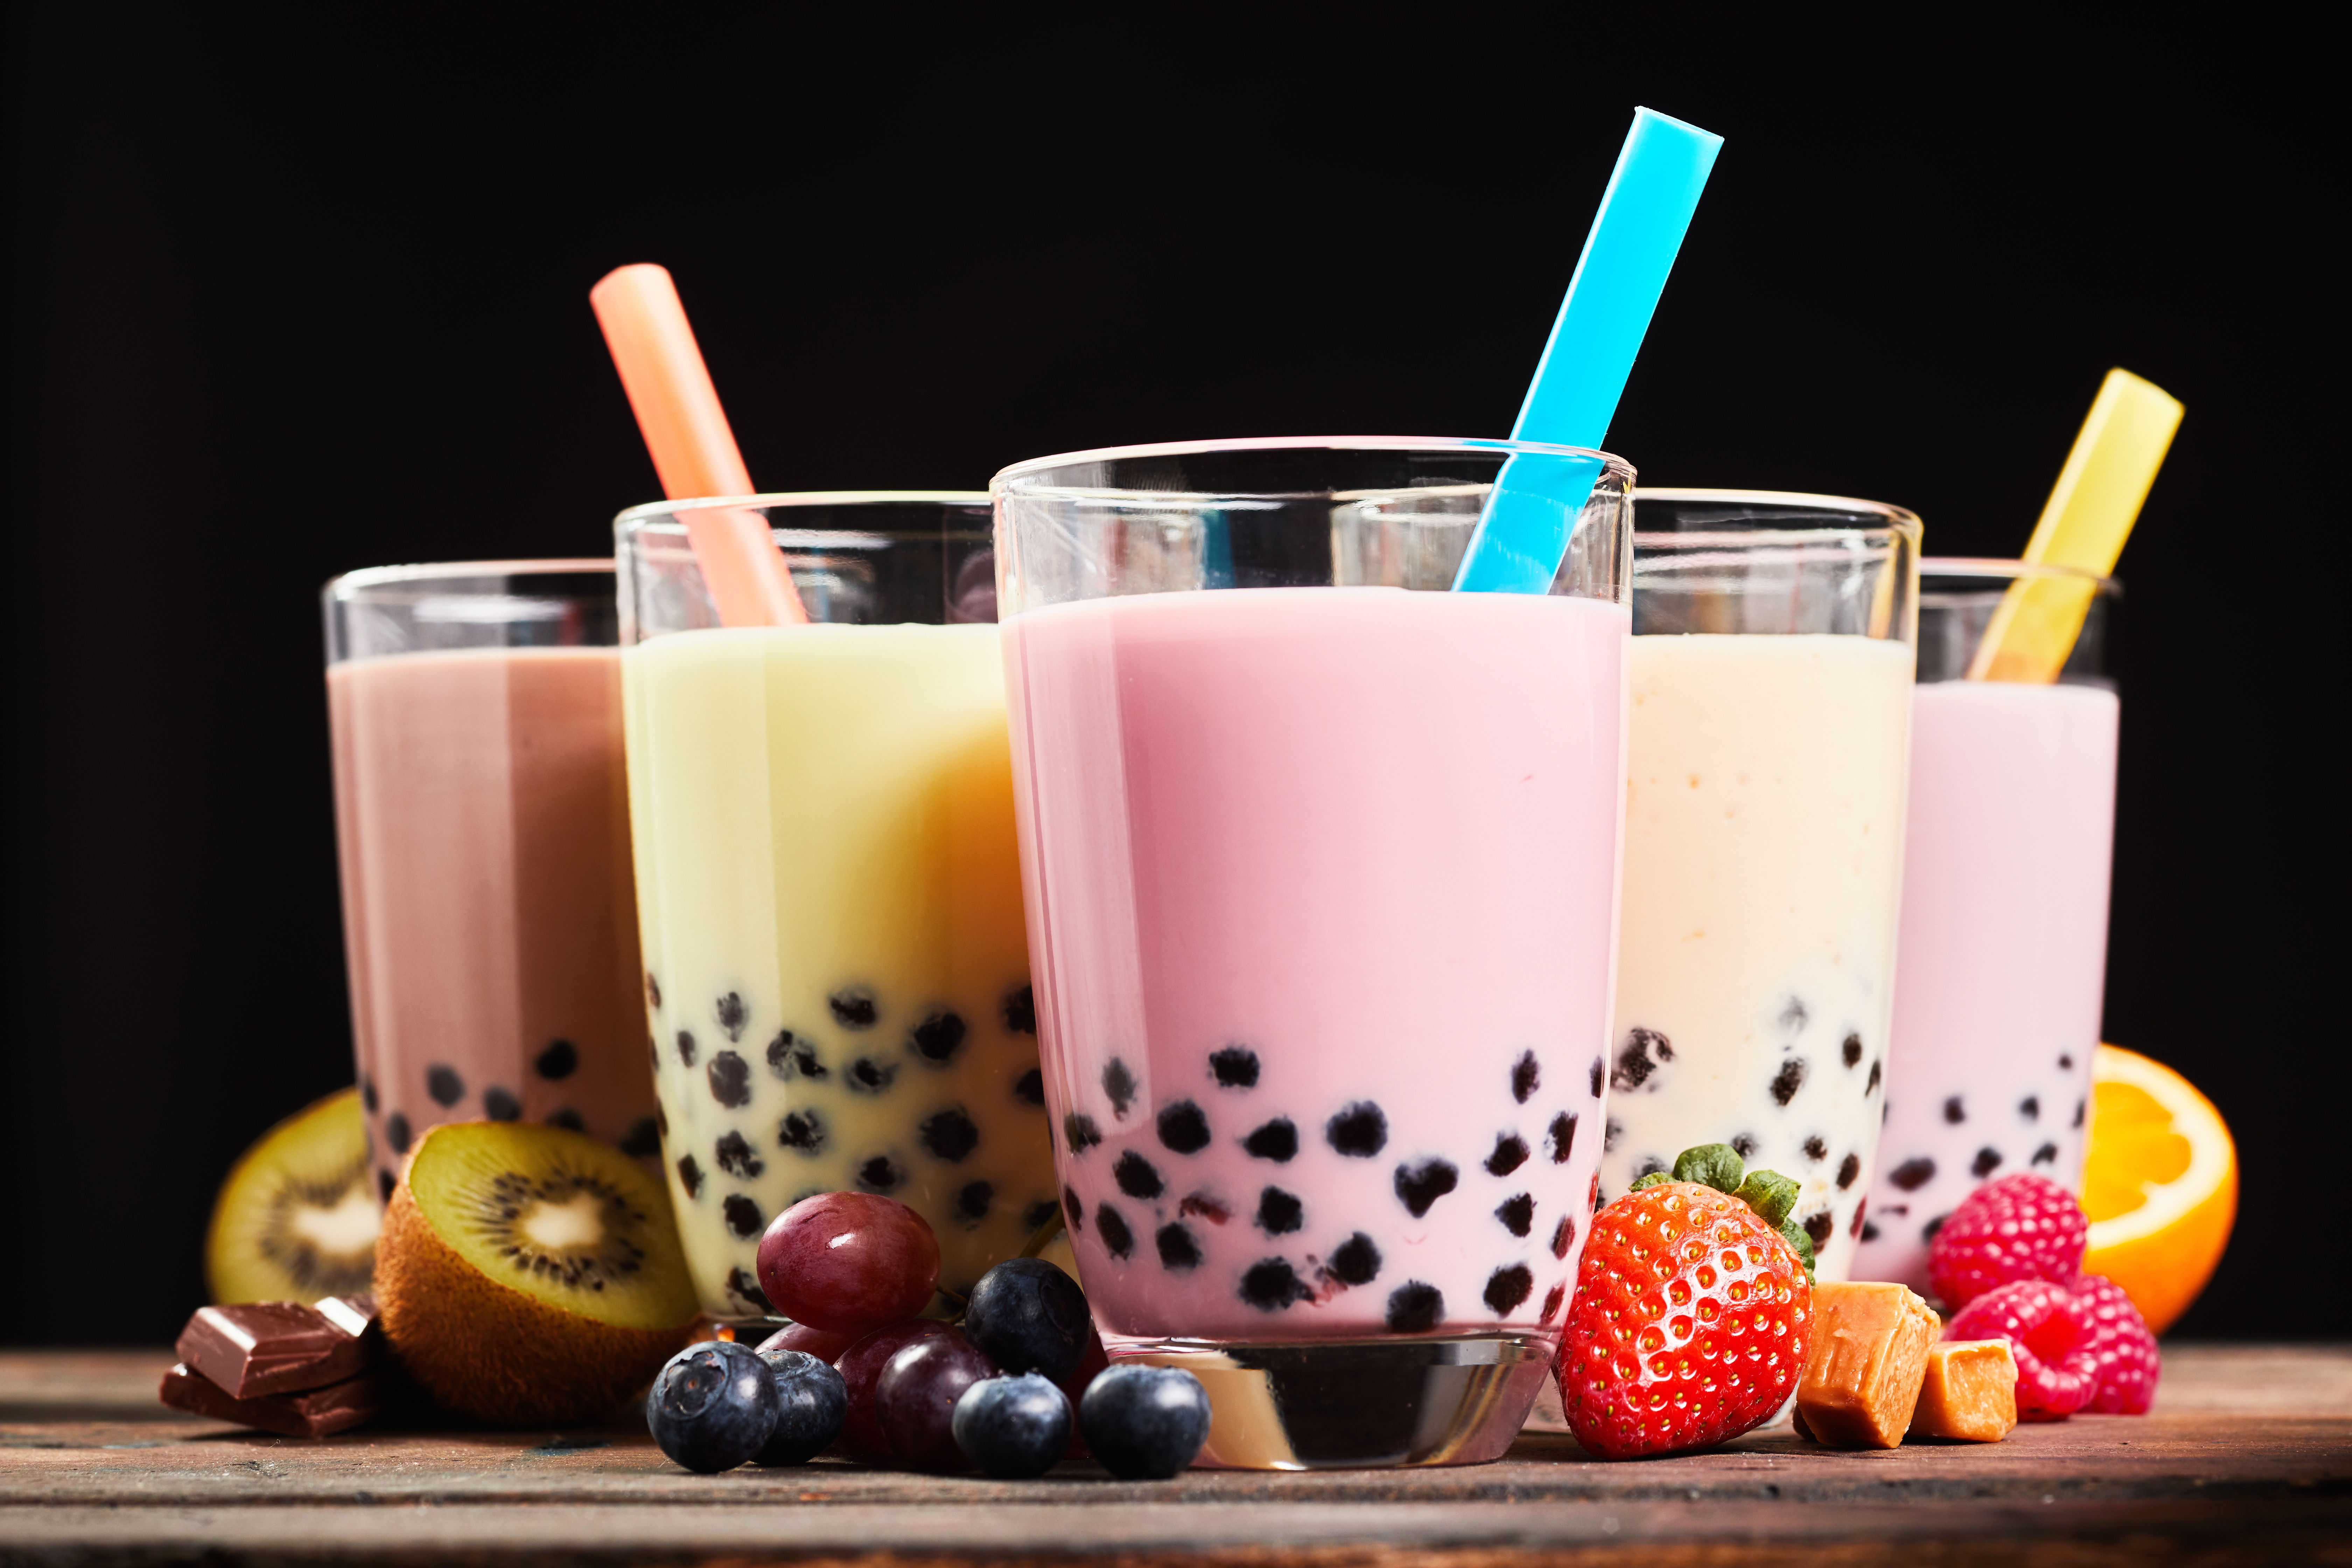 Glasses of refreshing milky boba or bubble tea with assorted fresh fruit ingredients, chocolate and caramel candy used as flavoring, low angle side view